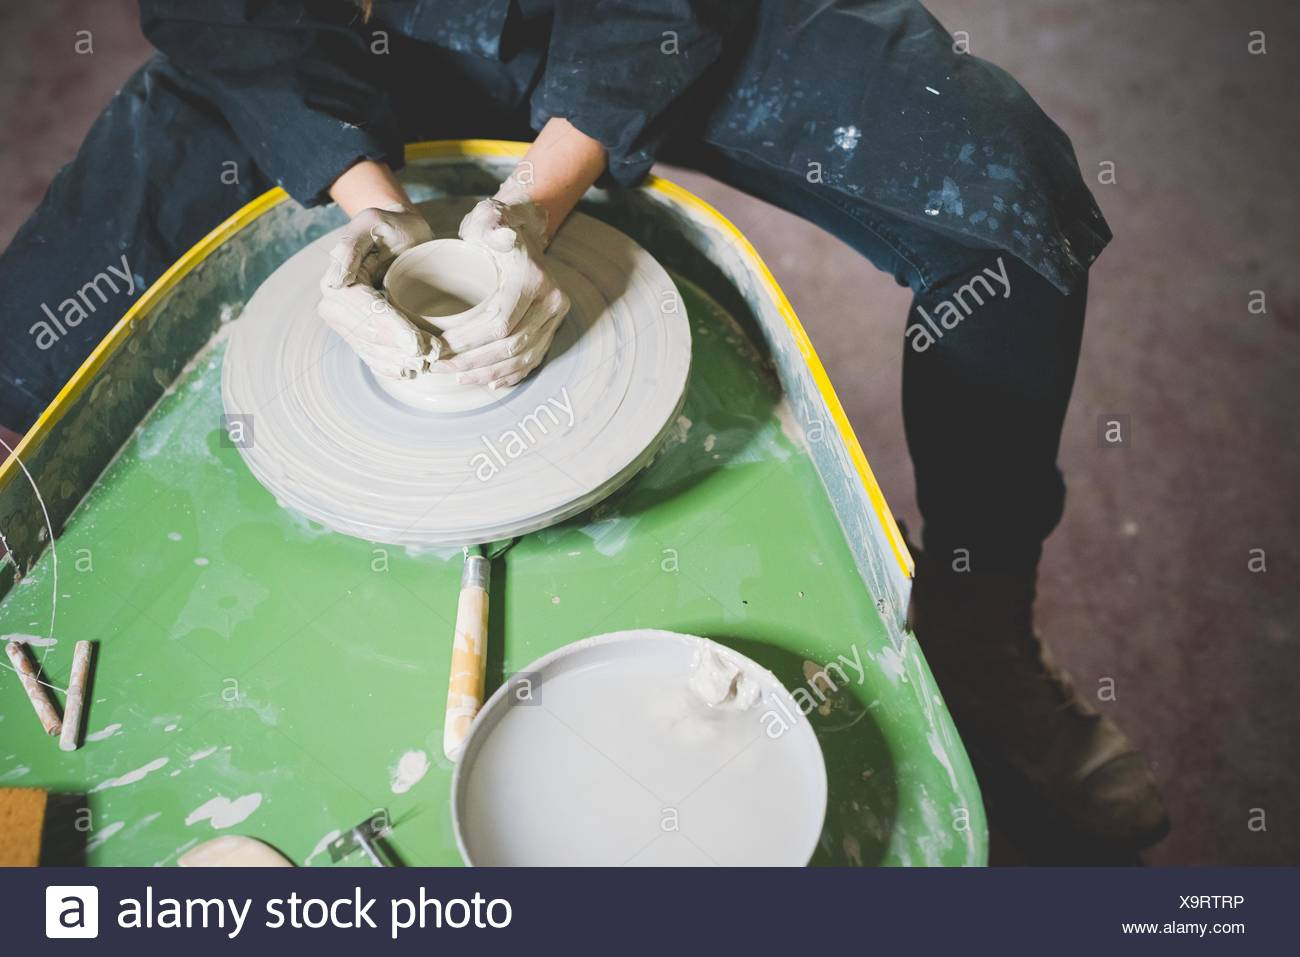 High angle view of young woman, waist down, sitting at pottery wheel making clay pot Stock Photo